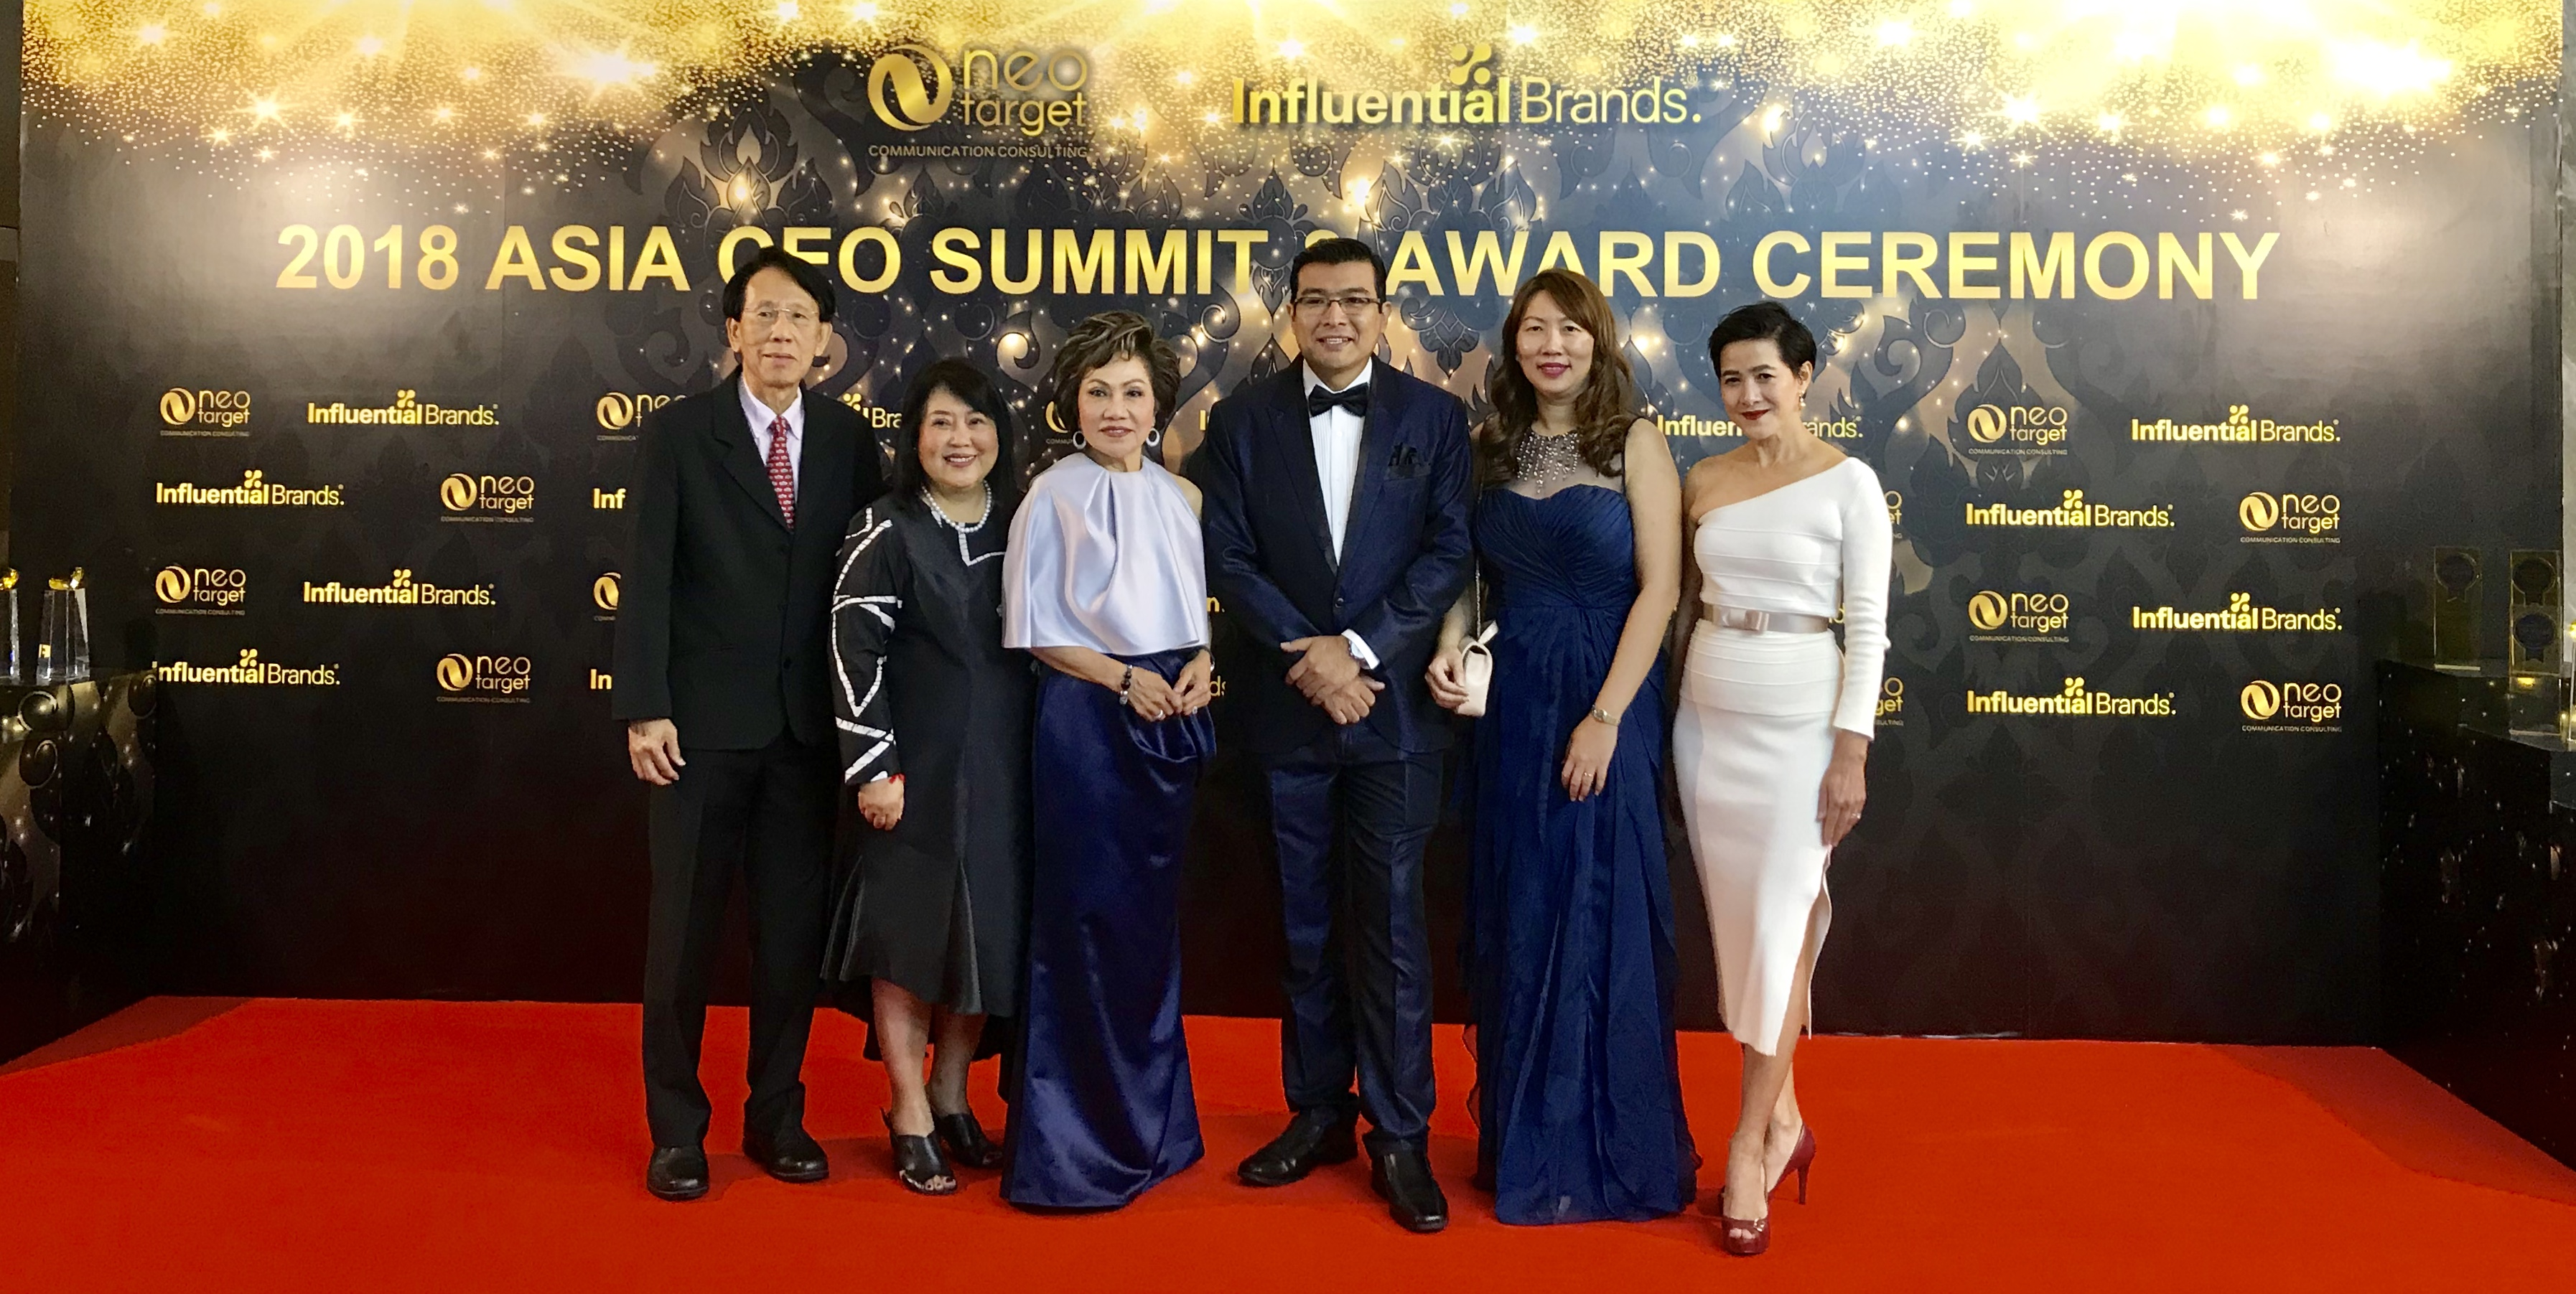 Honouring Thai CEOs and Brands